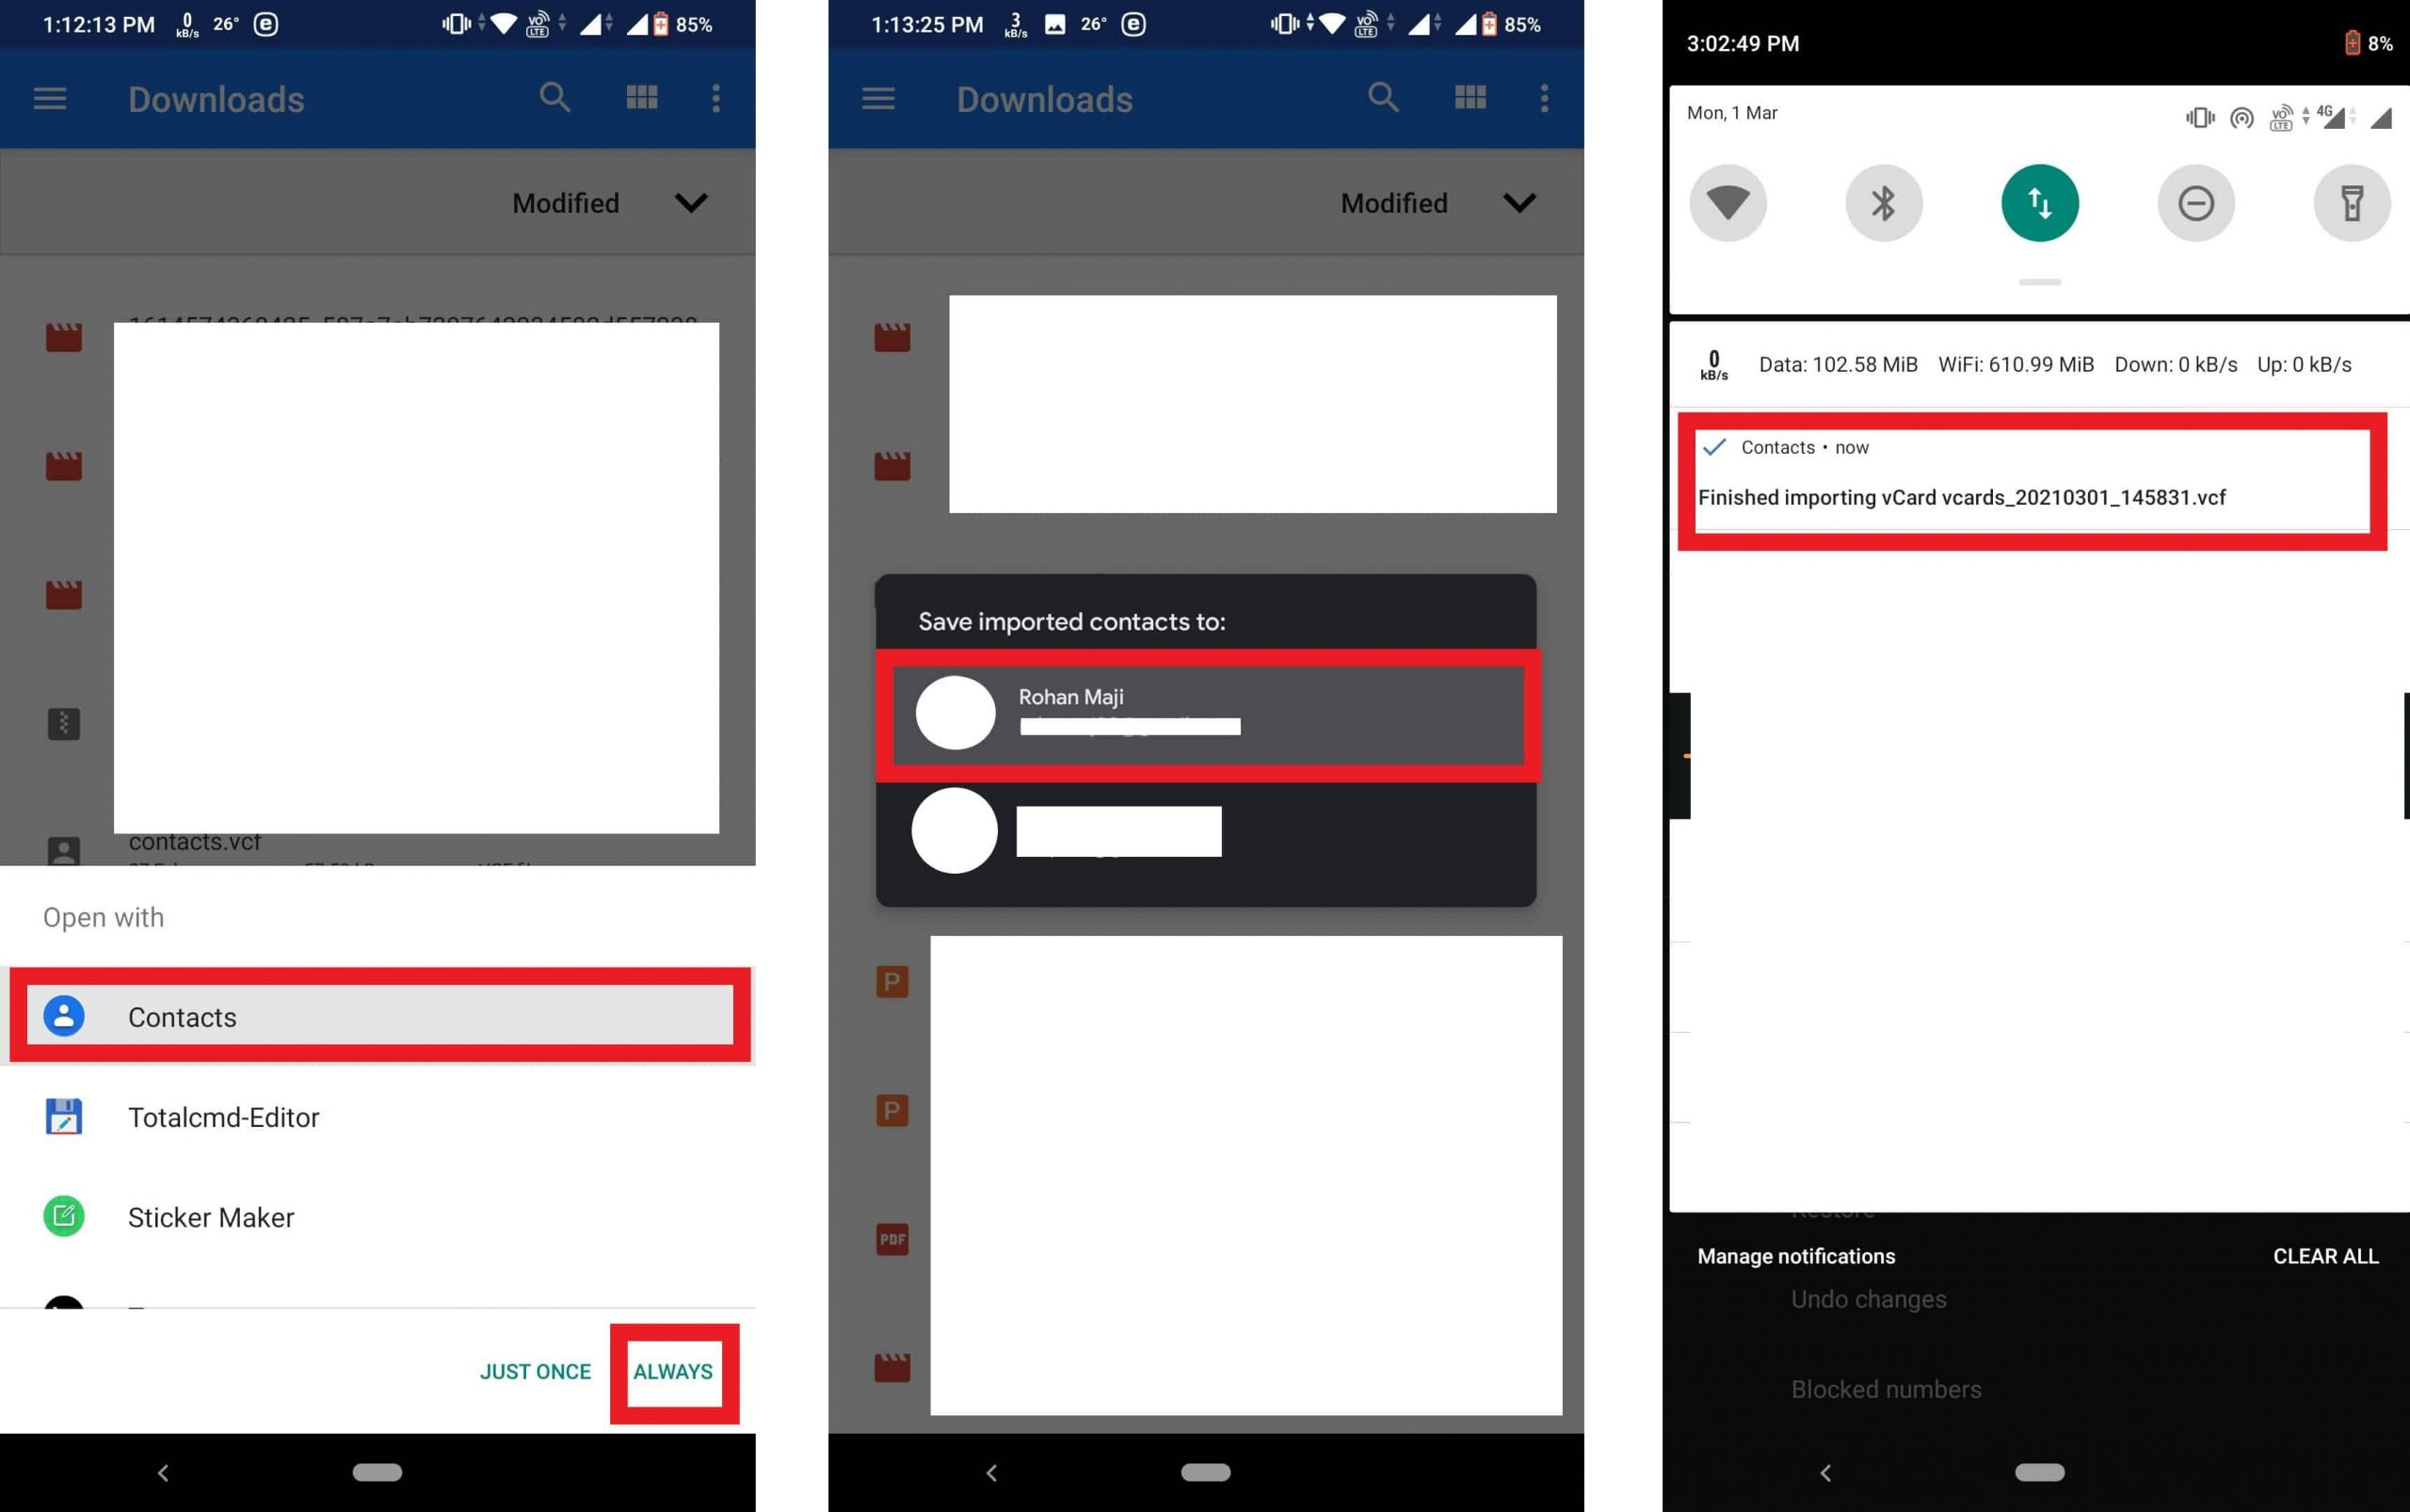 How to Transfer Contacts from iPhone to Android via Text/E-Mail